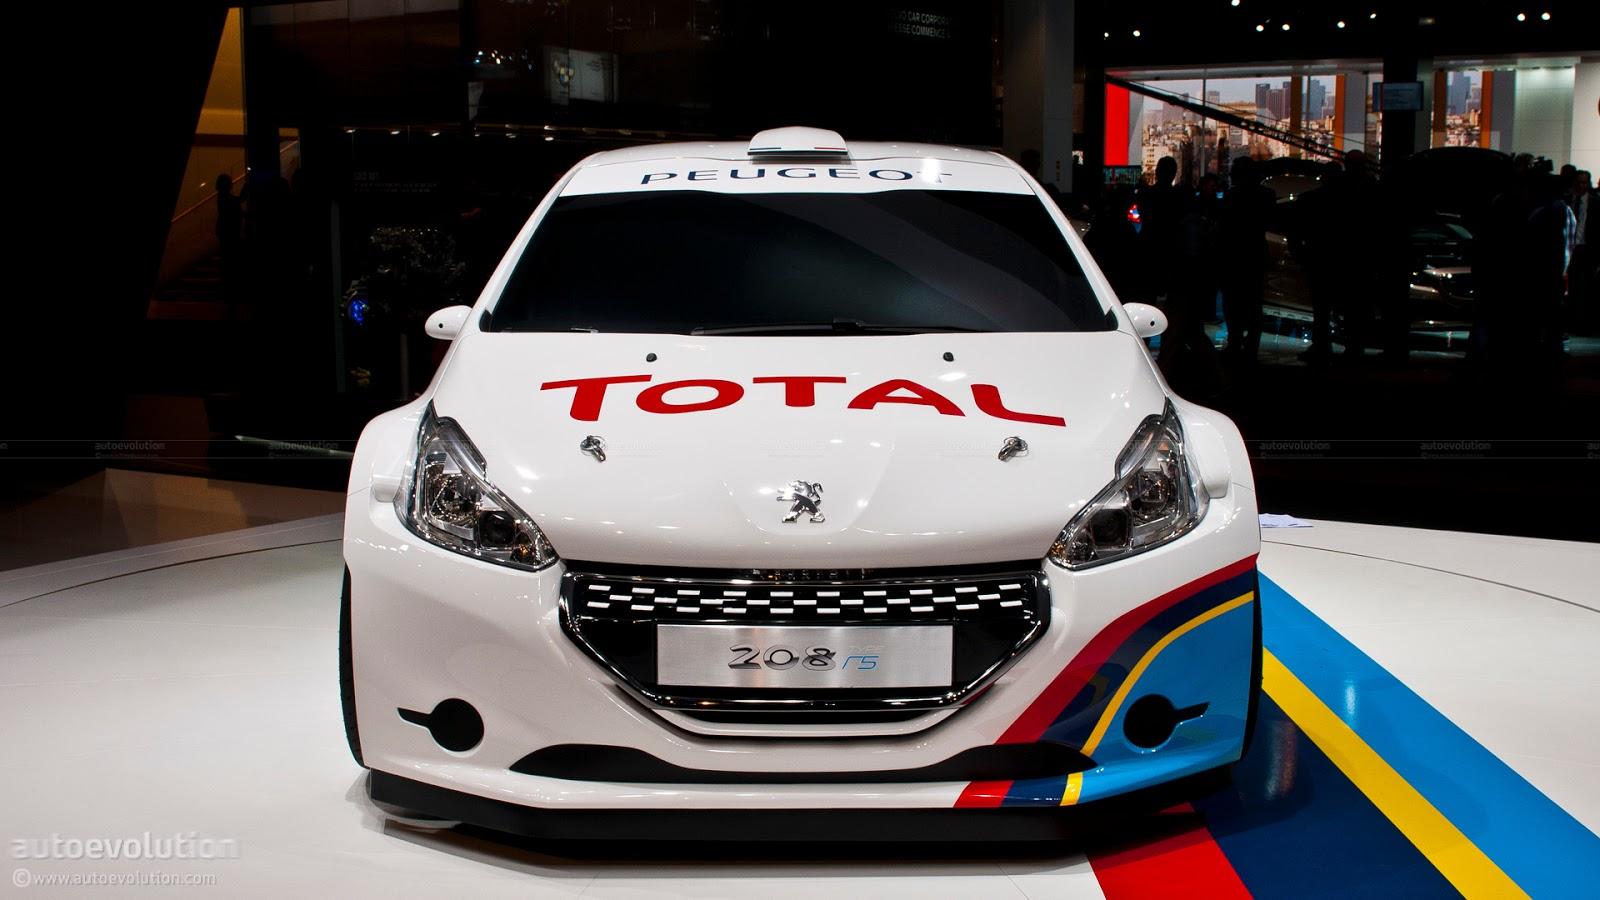 All car logos 2013 peugeot 208 r5 rally type - medium